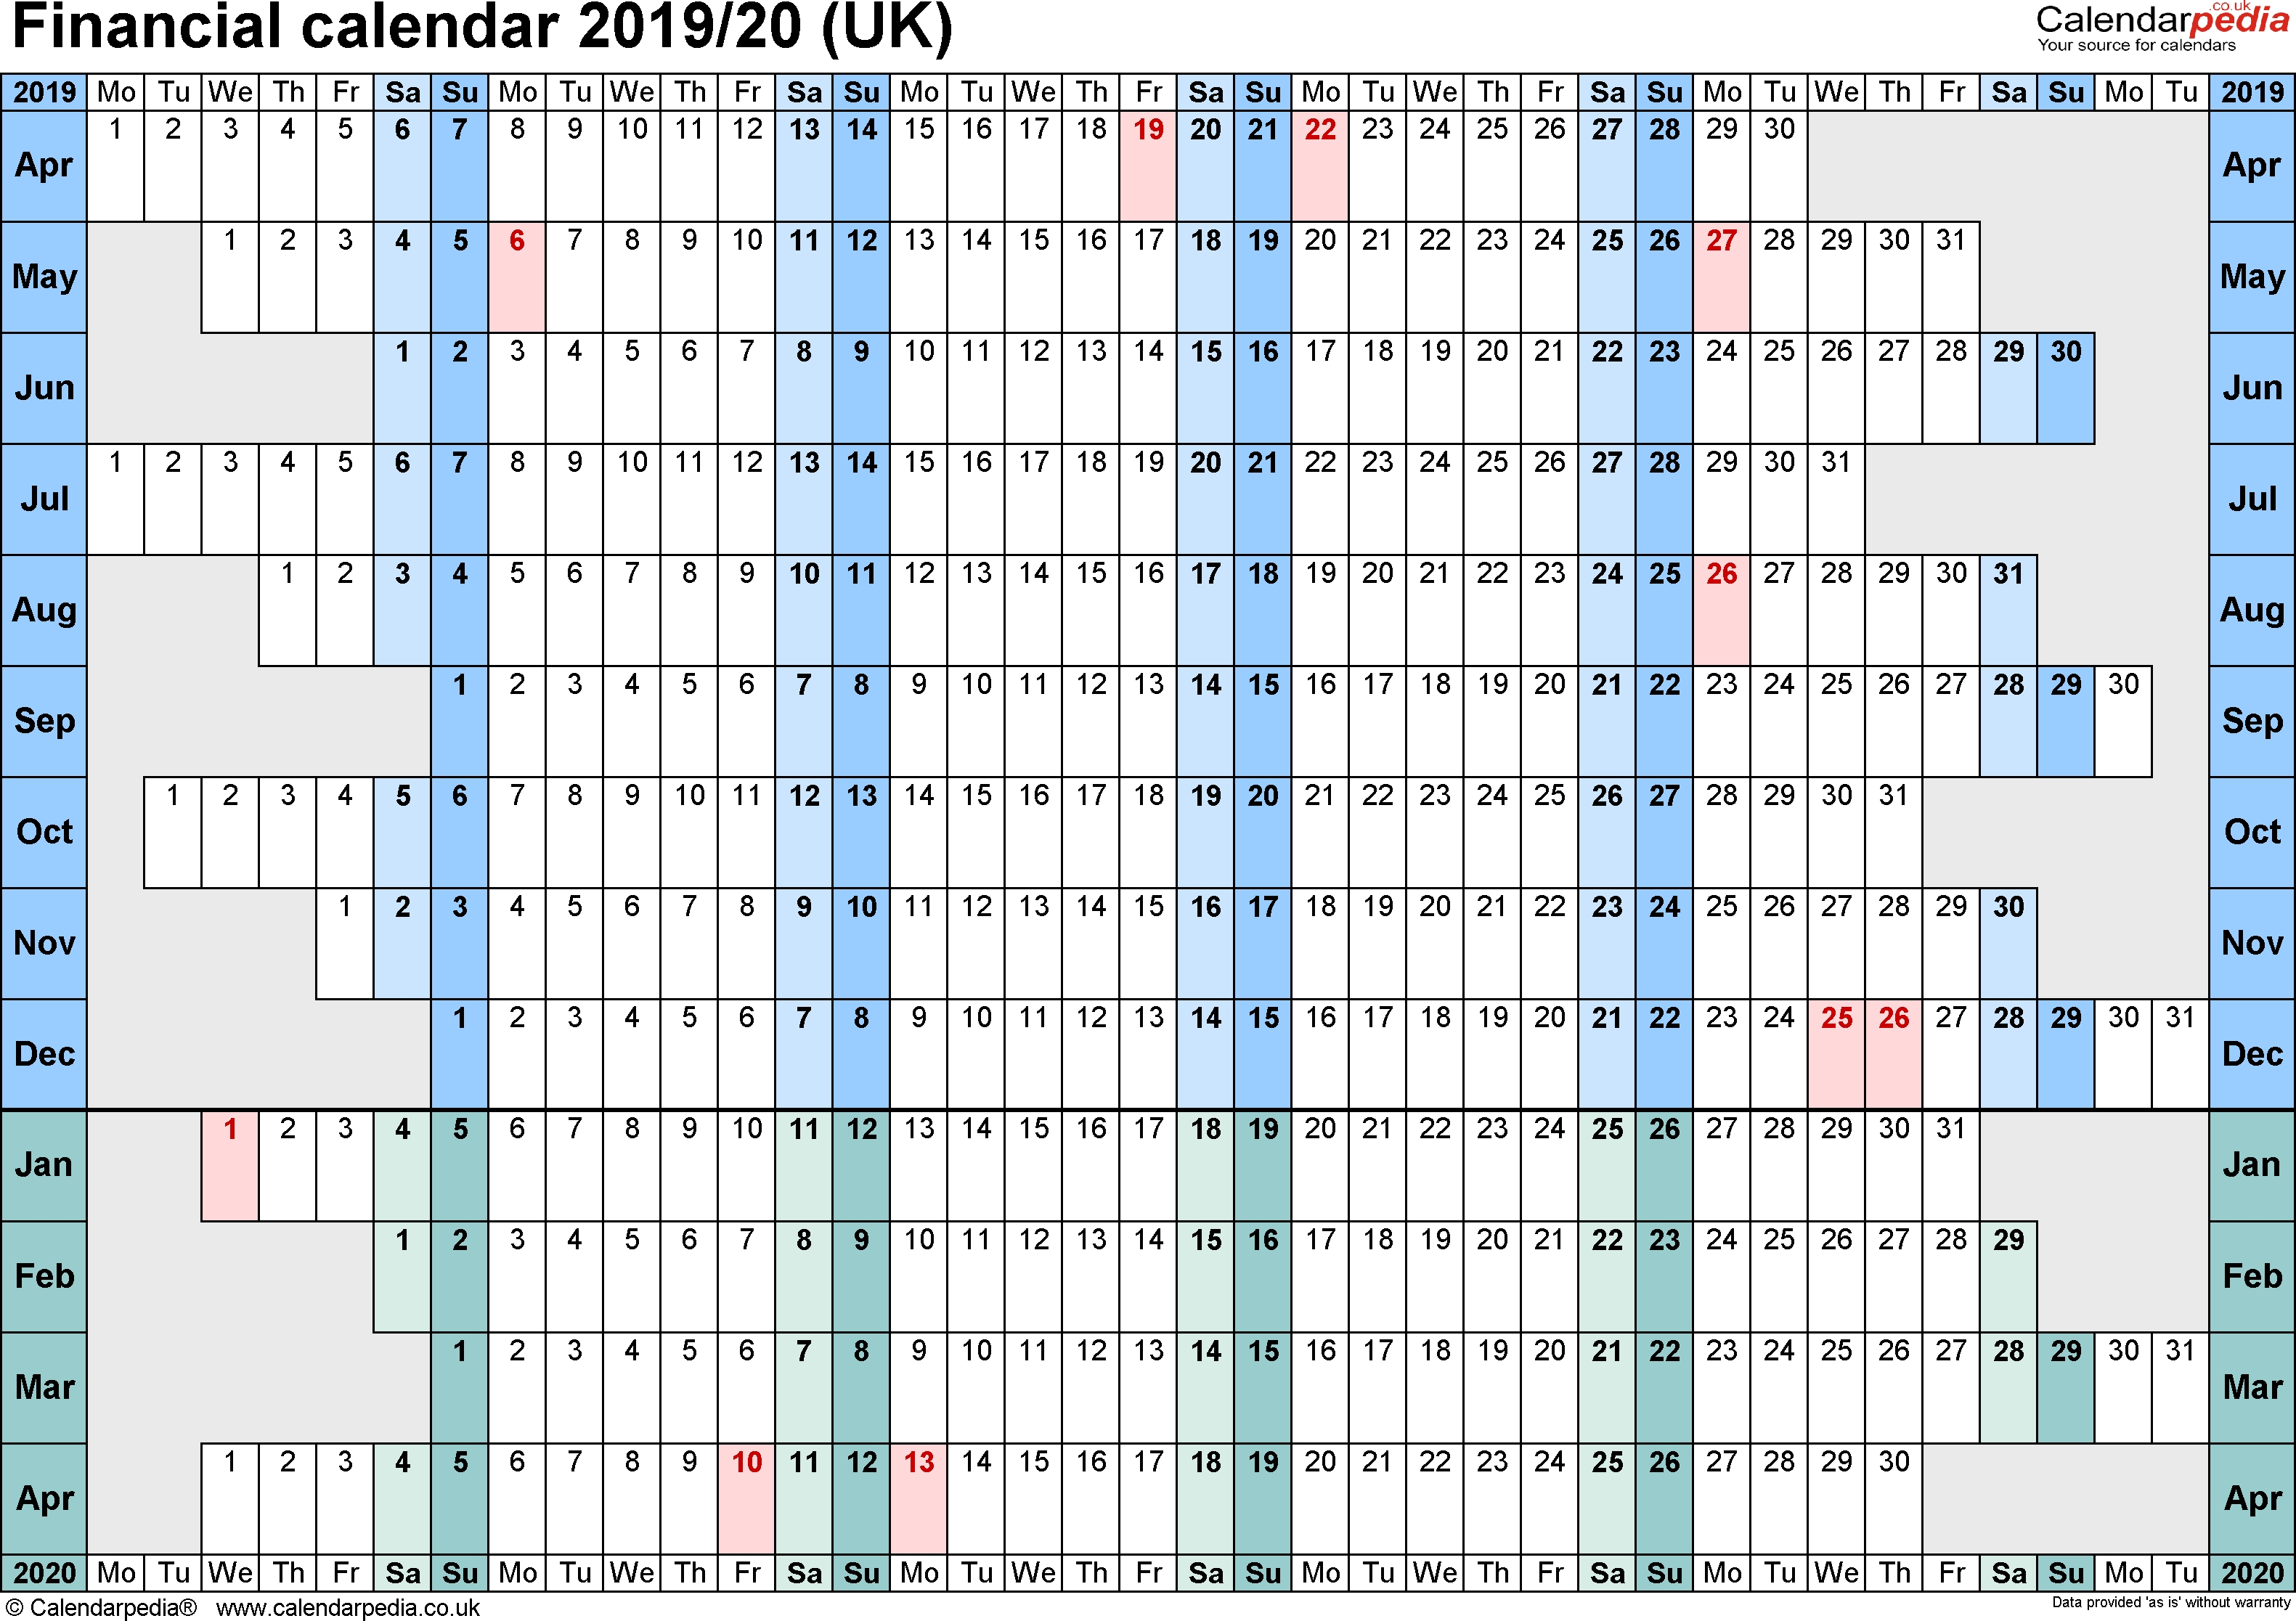 Financial Calendars 2019/20 (Uk) In Pdf Format throughout Tax Calender 2019/2020